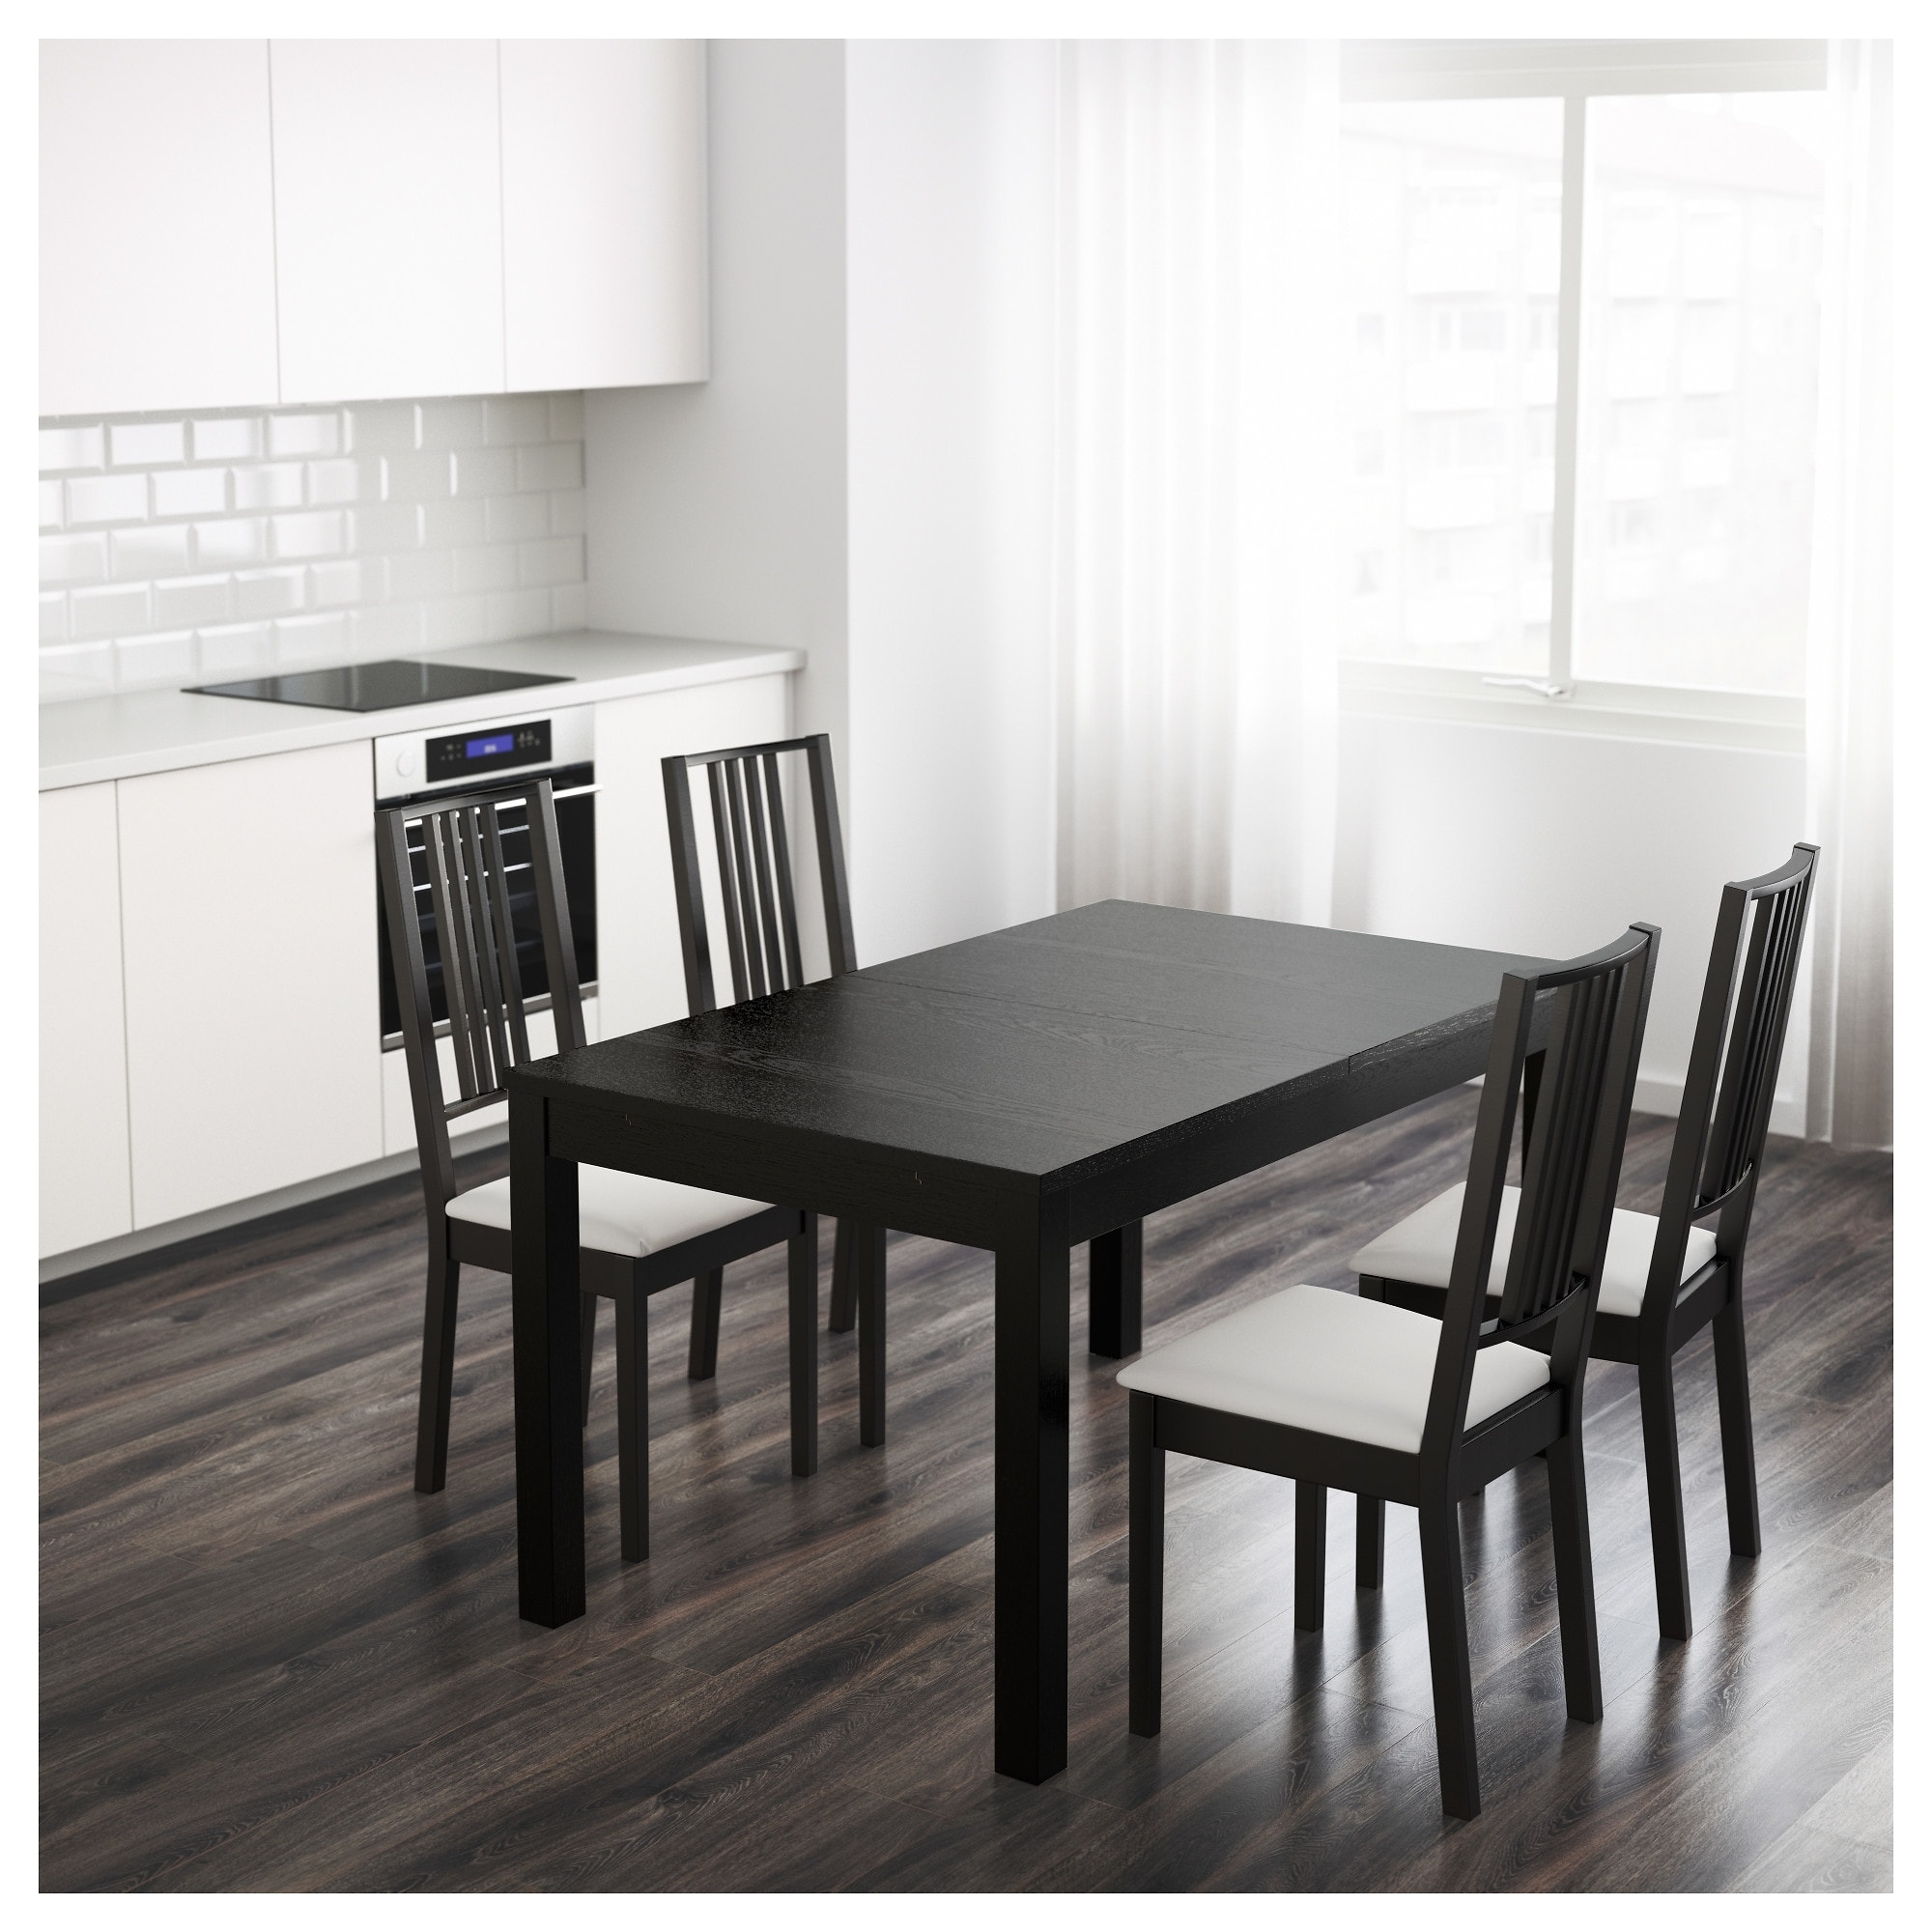 Bjursta Extendable Table Brown Black 140/180/220 X 84 Cm – Ikea Pertaining To Preferred Black Extendable Dining Tables And Chairs (View 15 of 25)